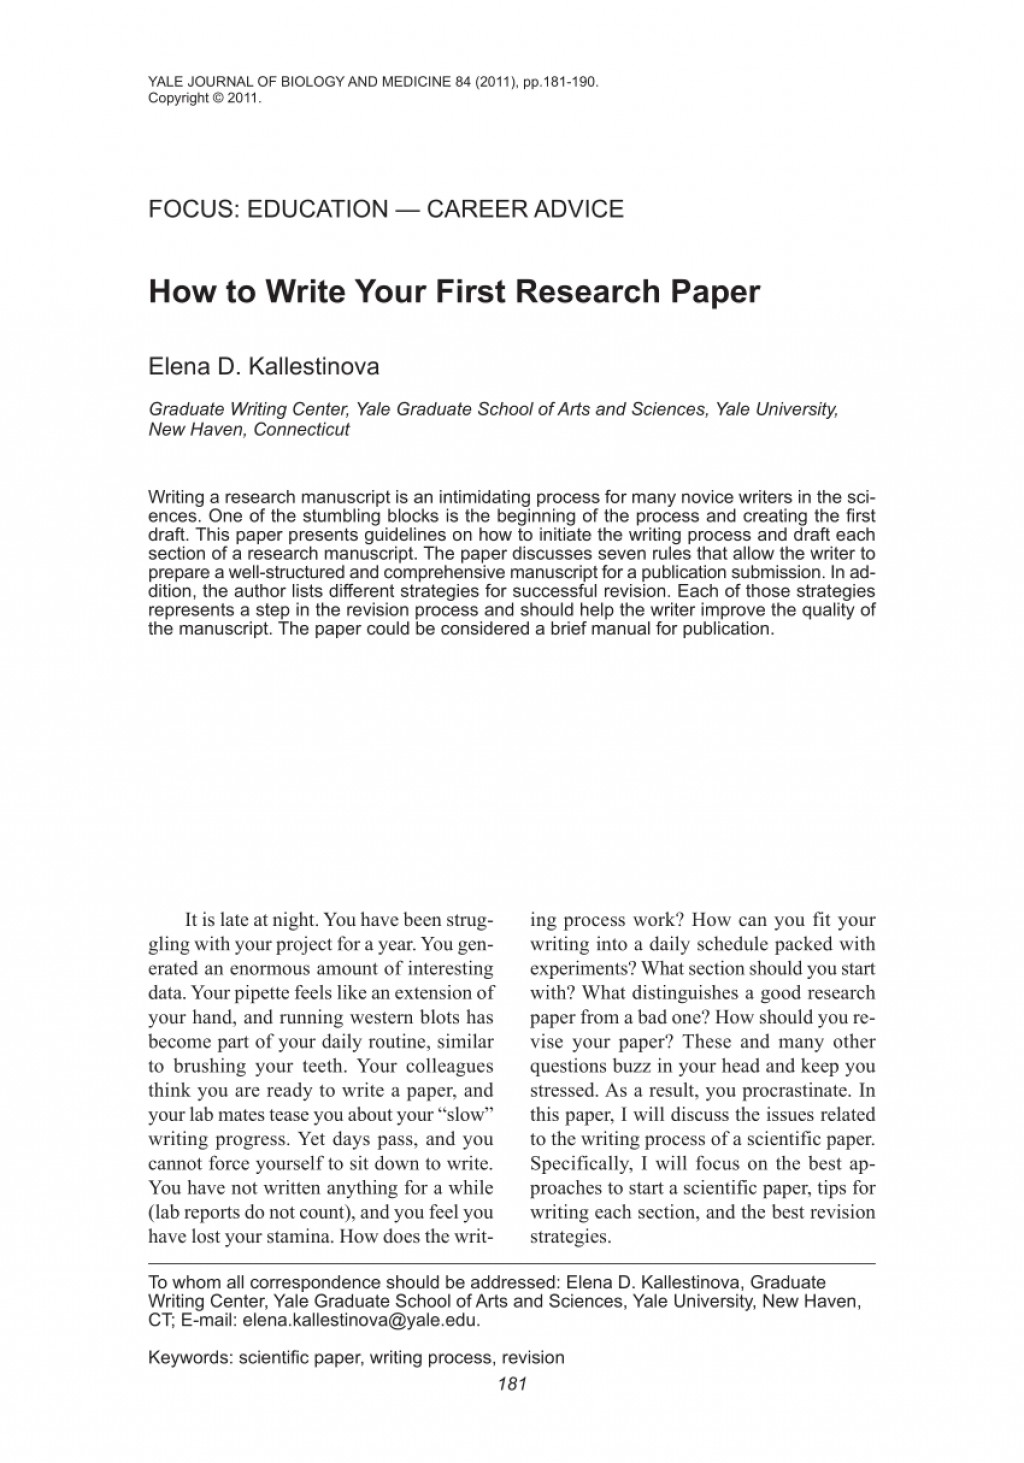 009 Tips For Writing Research Paper Awful A History Quickly Large